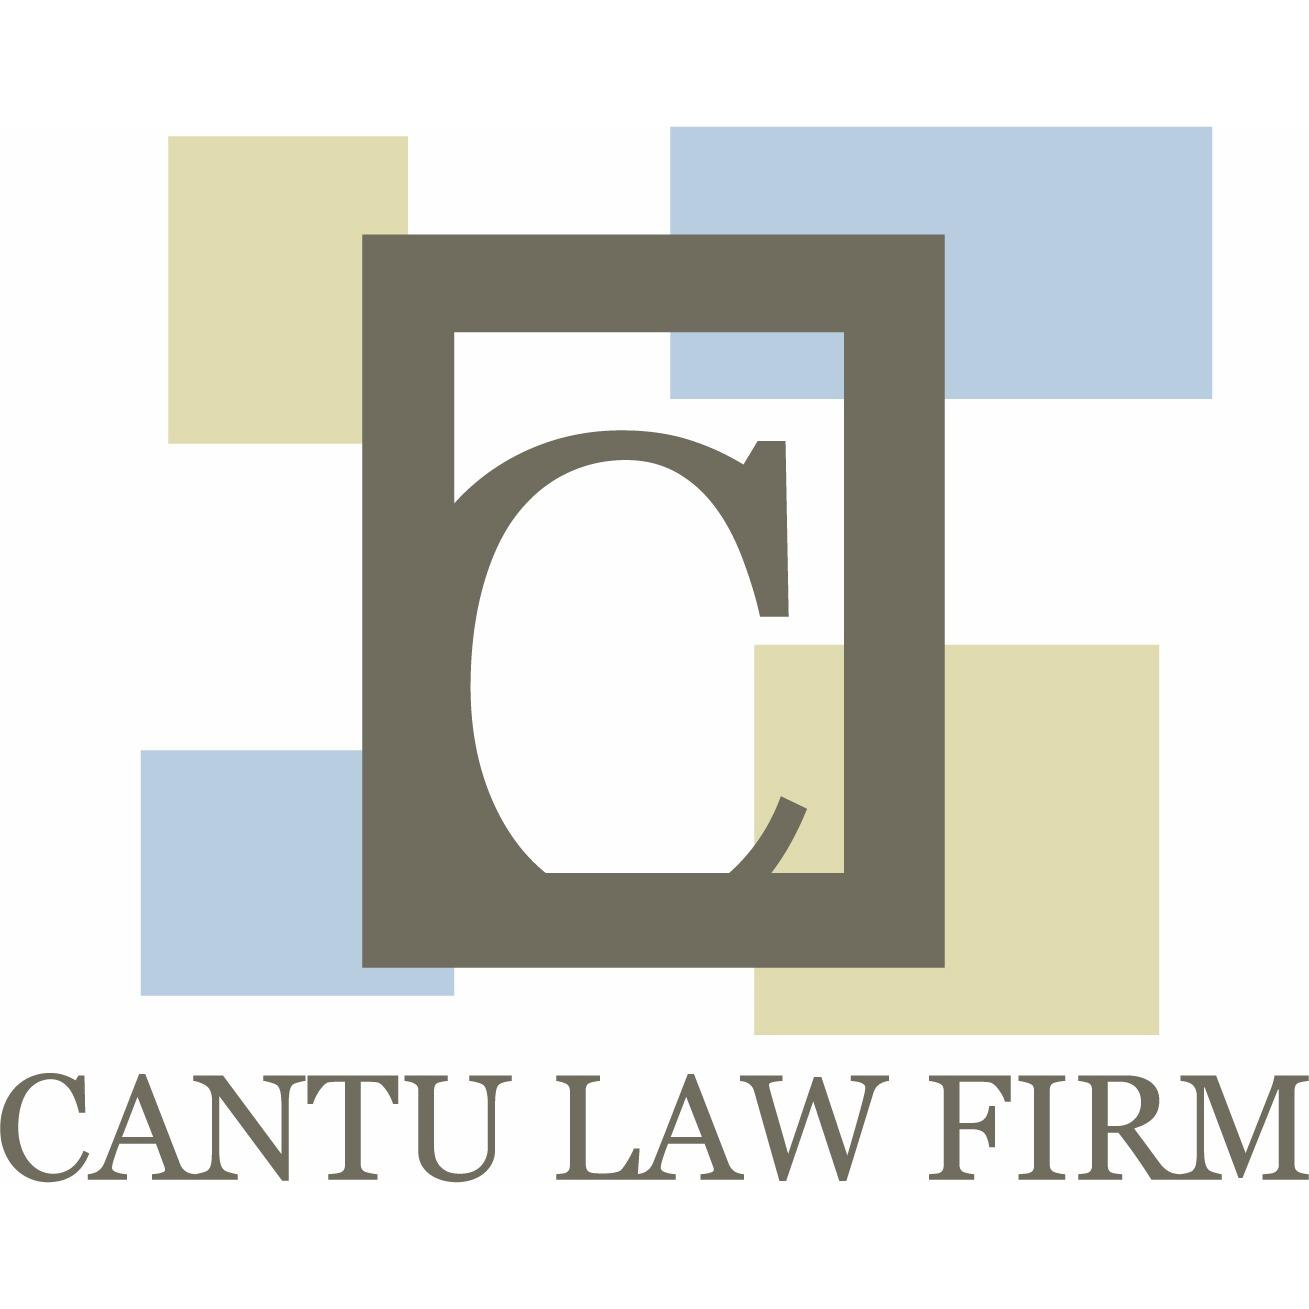 Cantu Law Firm | Law Firm Houston image 0